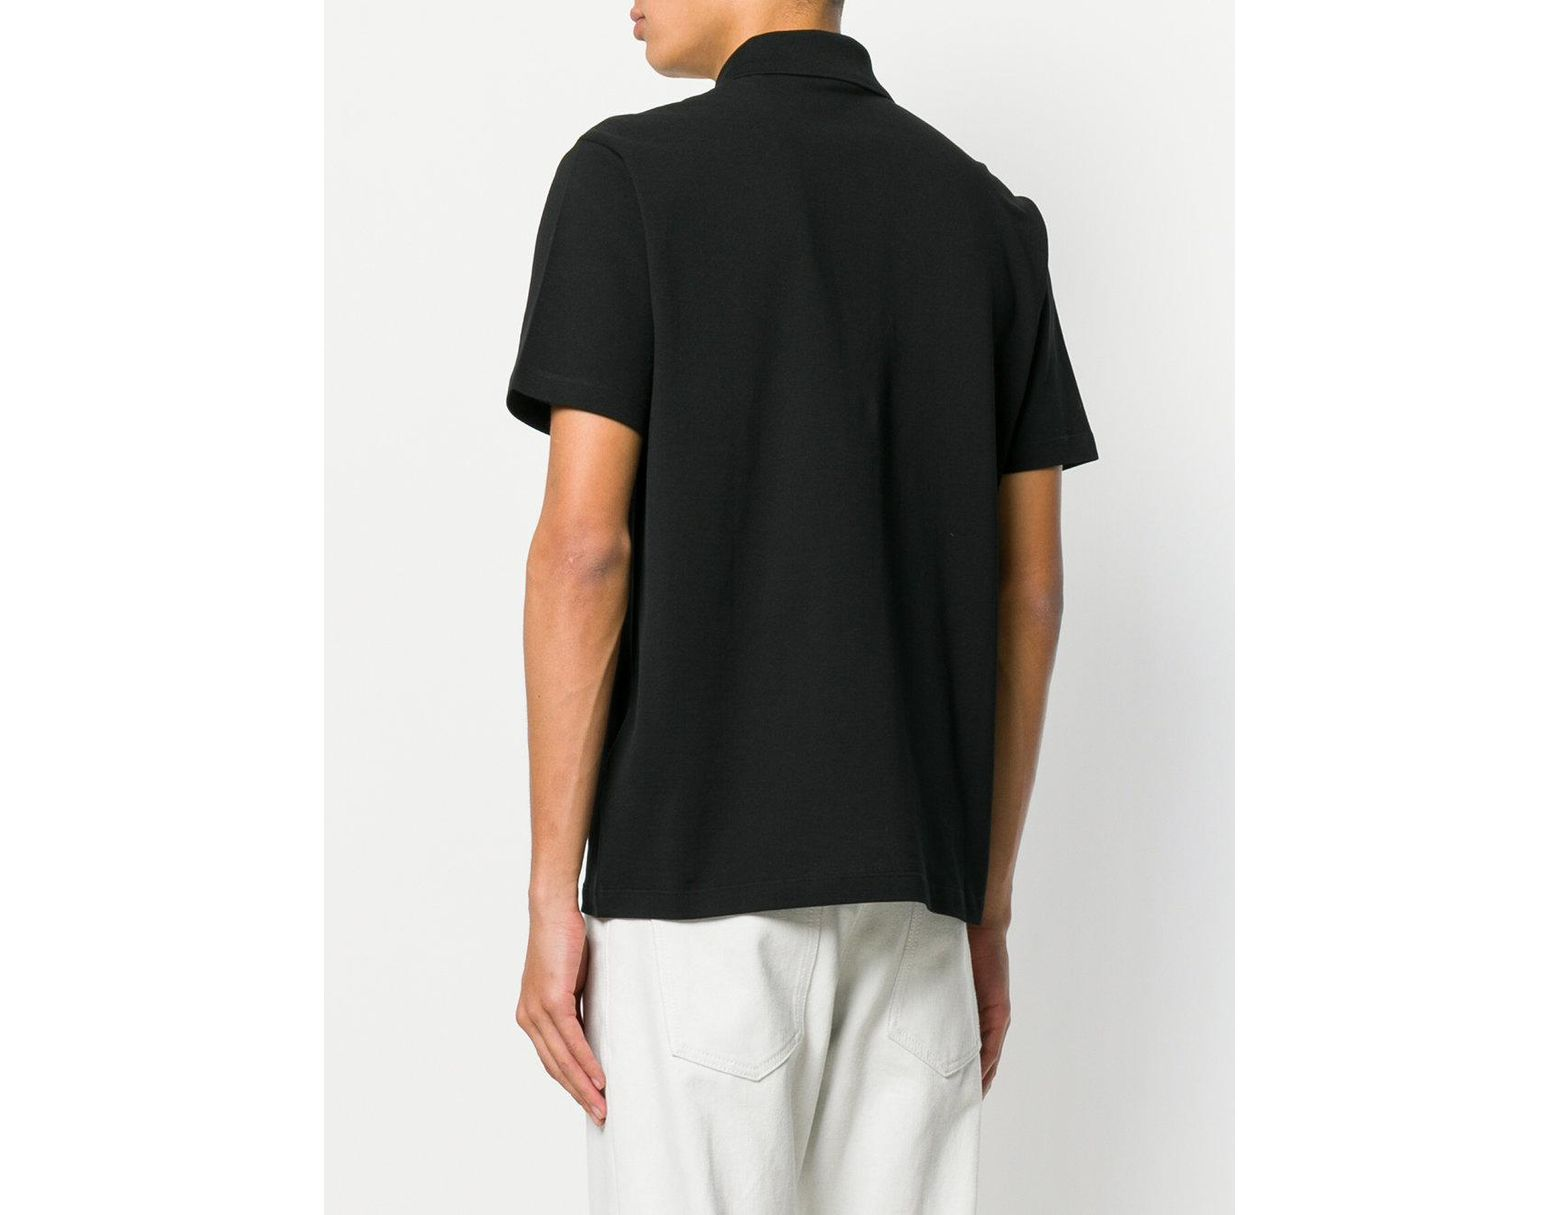 d0c9aa68 Versace Embroidered Medusa Polo Shirt in Black for Men - Lyst